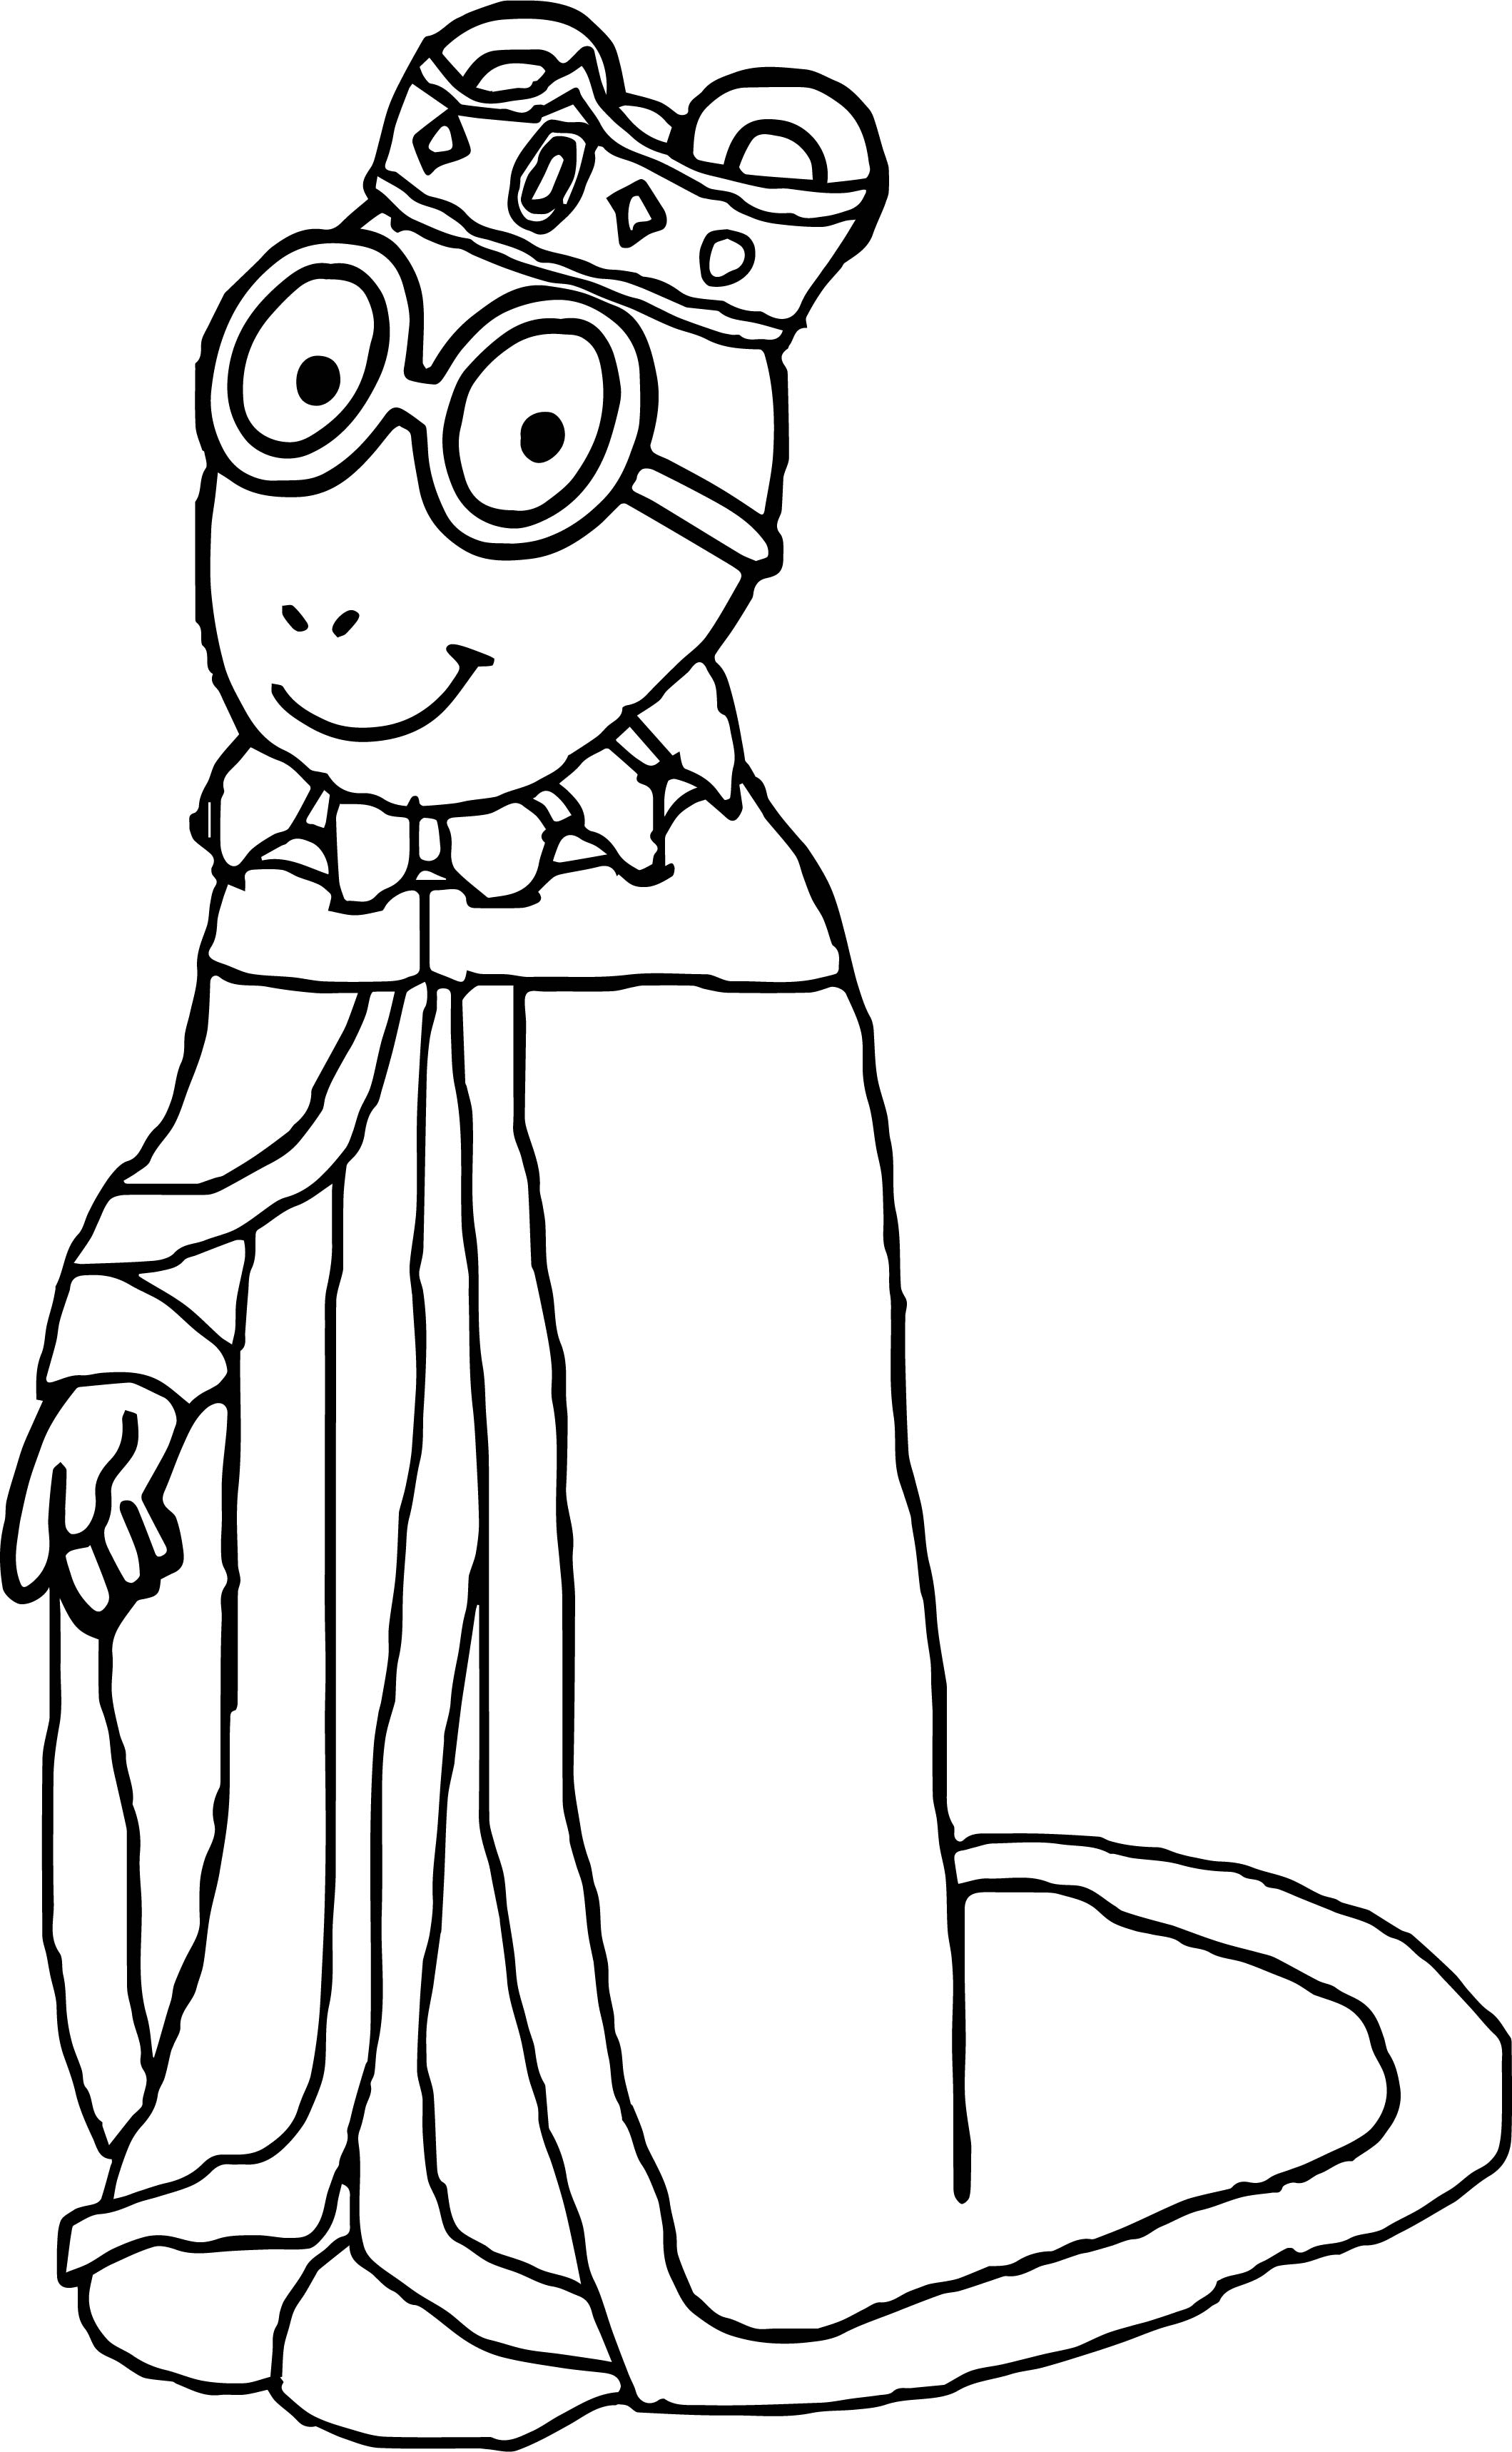 King Arthur Coloring Page